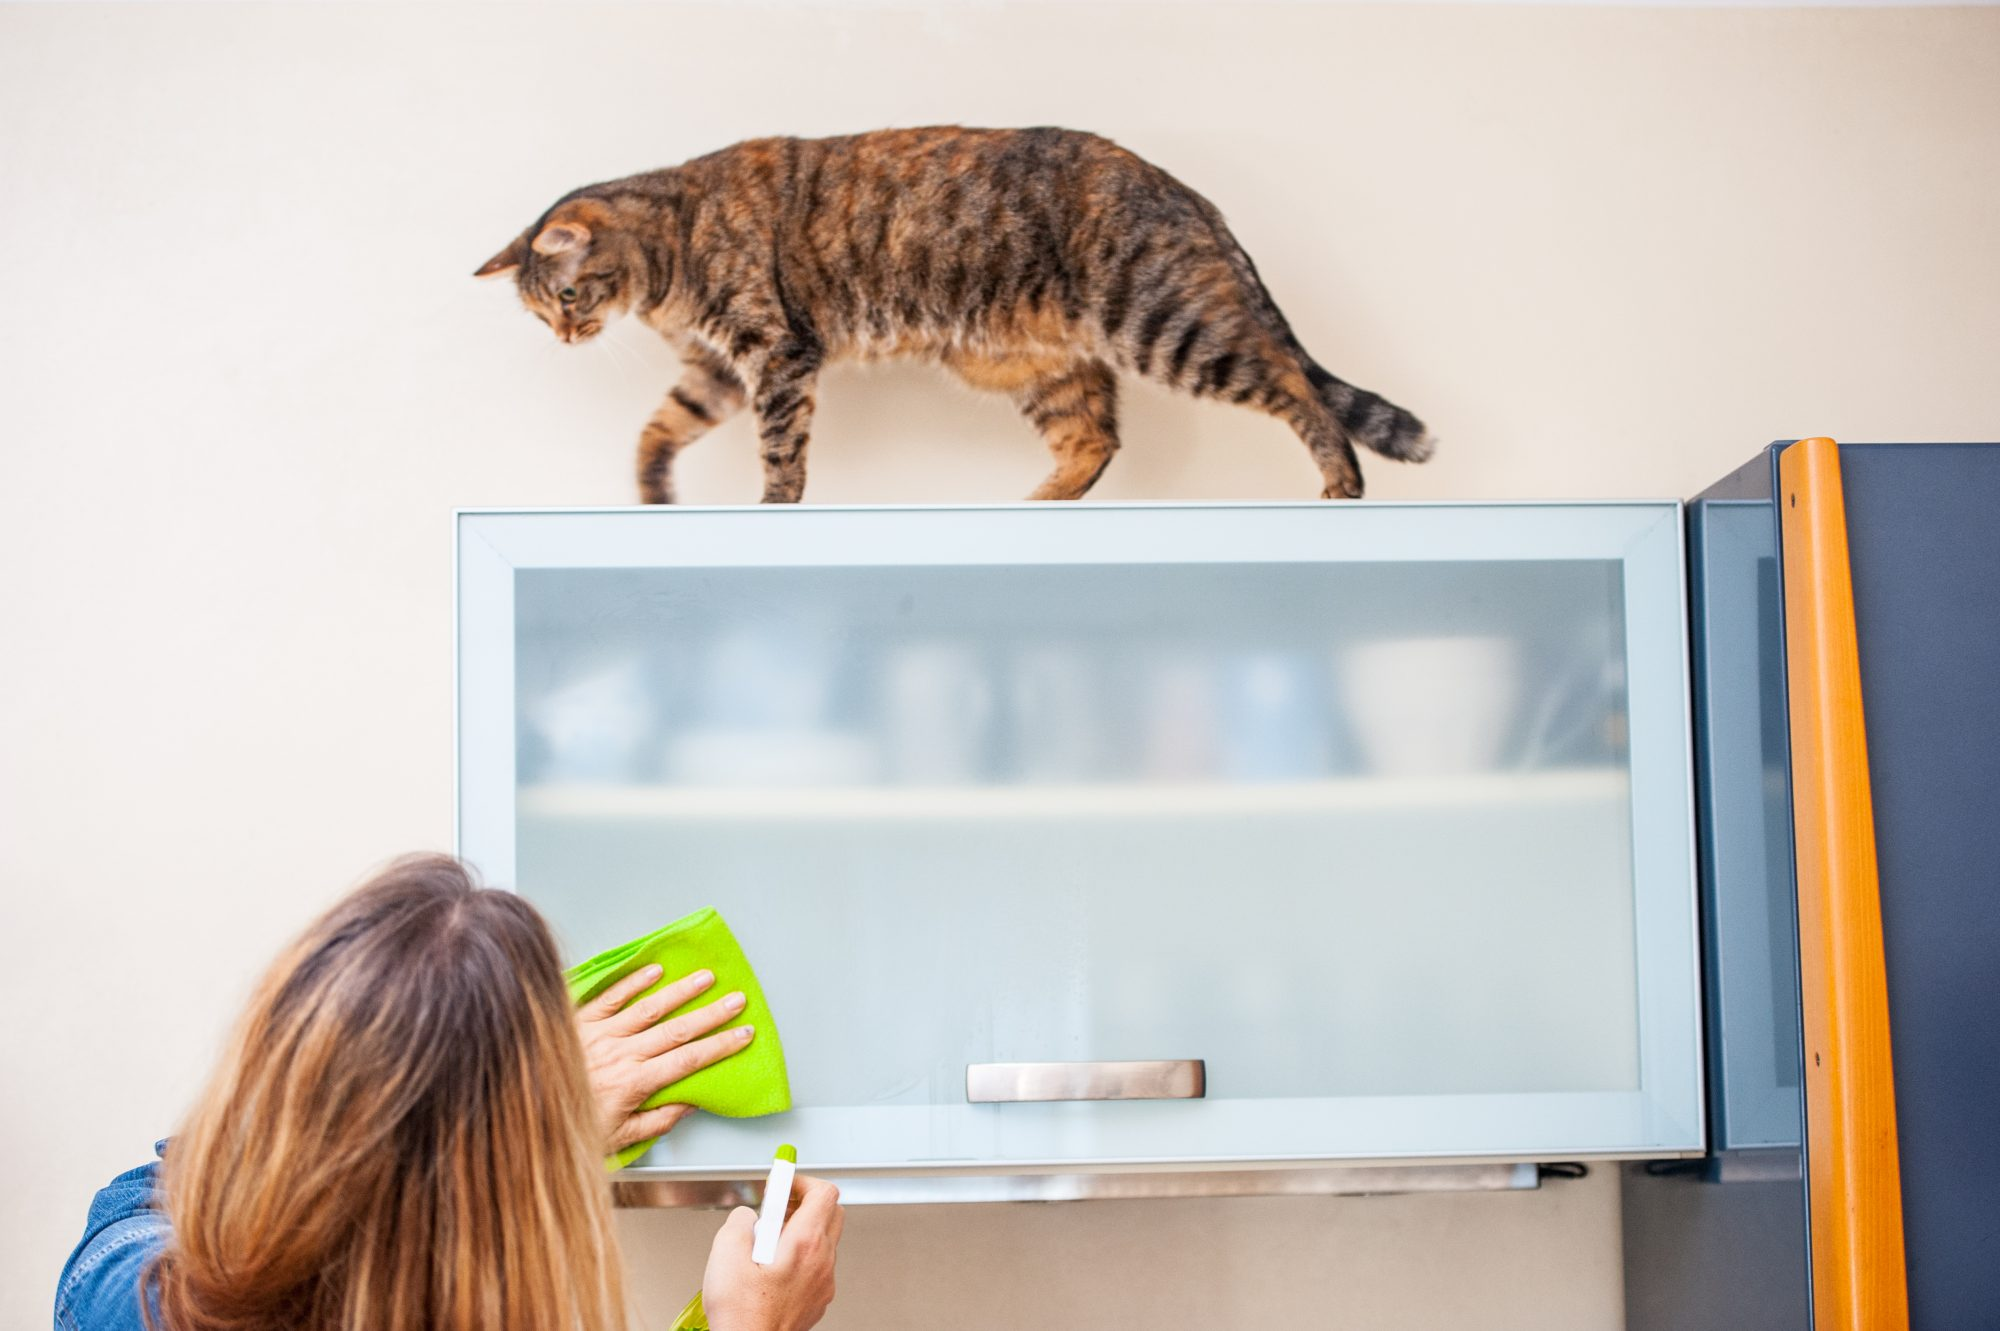 cleaning kitchen cabinets with cat playing